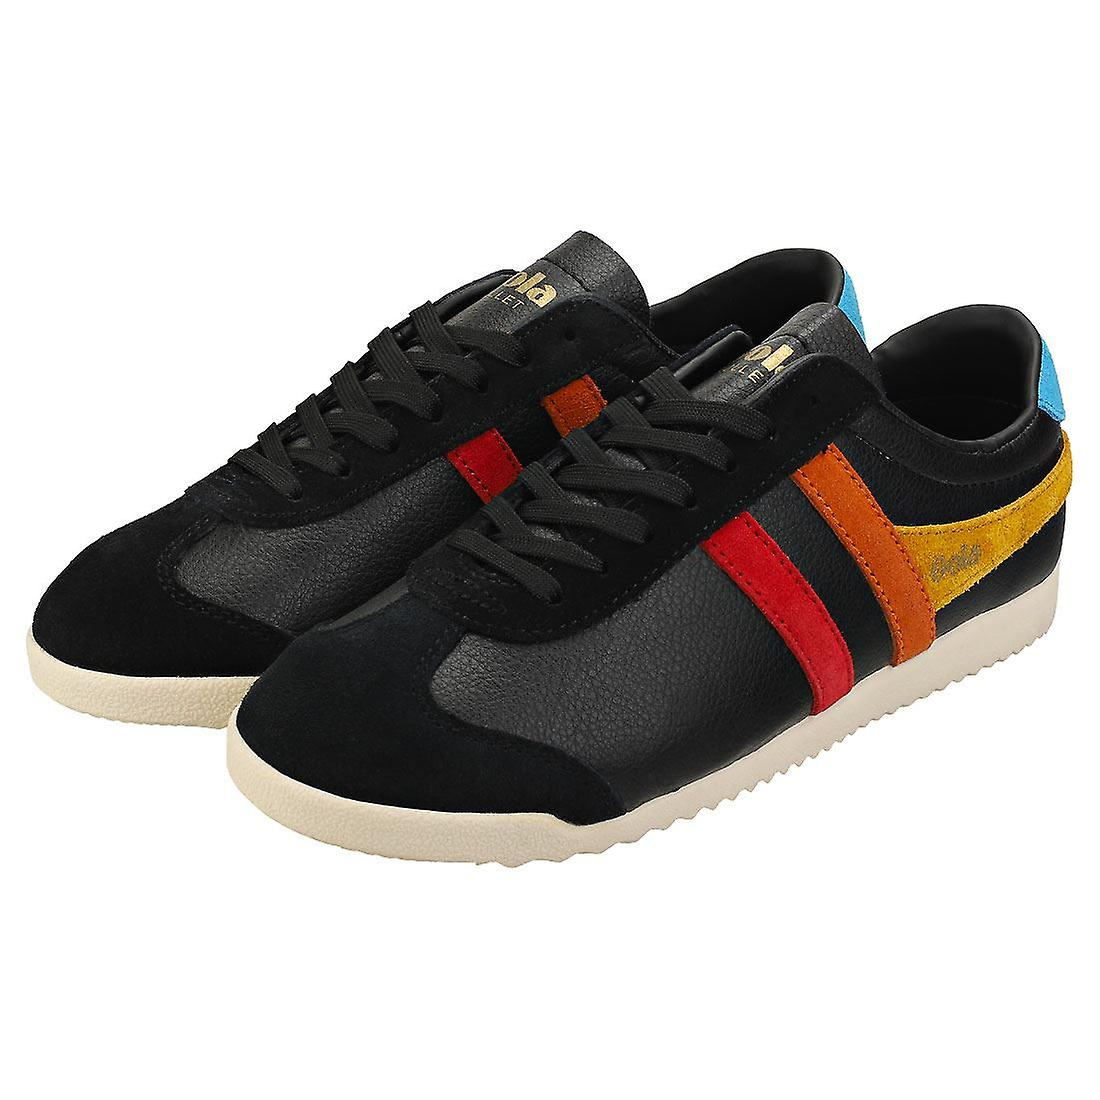 Gola Bullet Trident Womens Casual Trainers in Black Multicolour